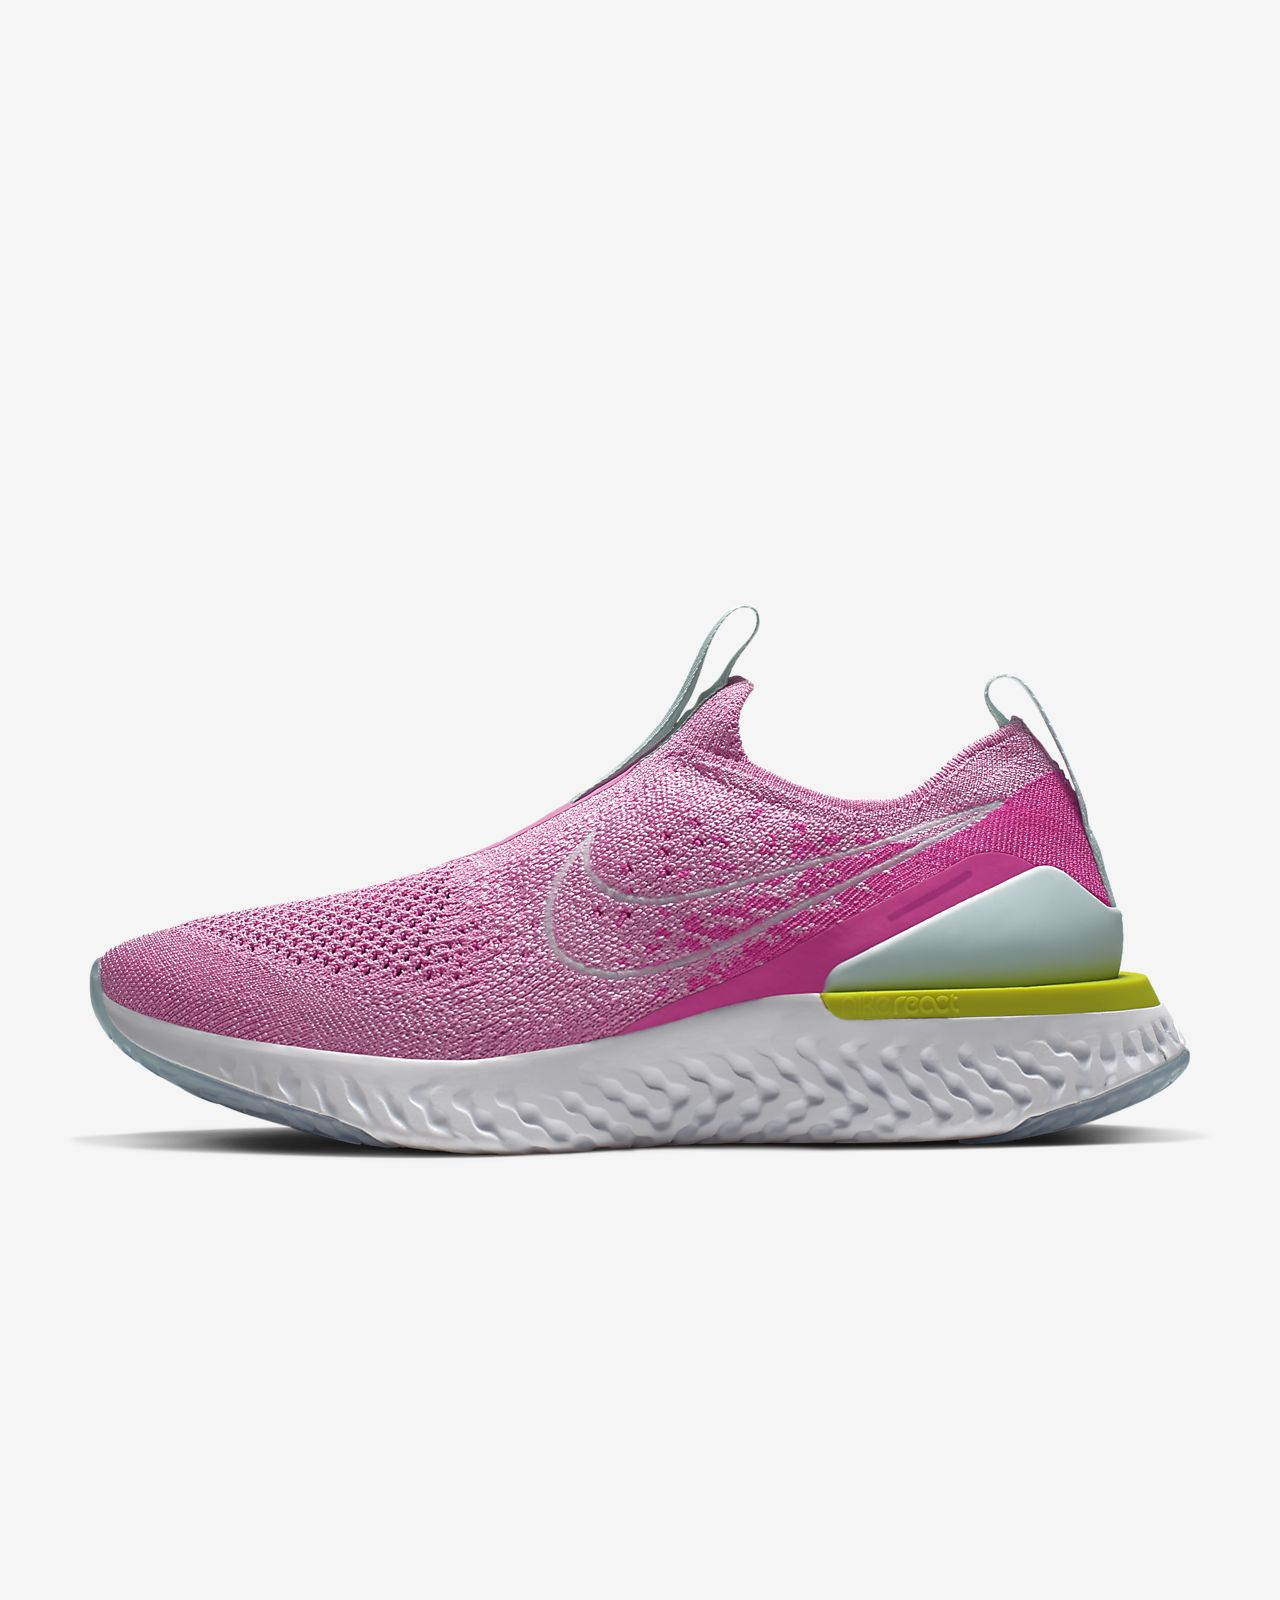 pretty nice a82da d0fda ... Nike Epic Phantom React Flyknit Women s Running Shoe